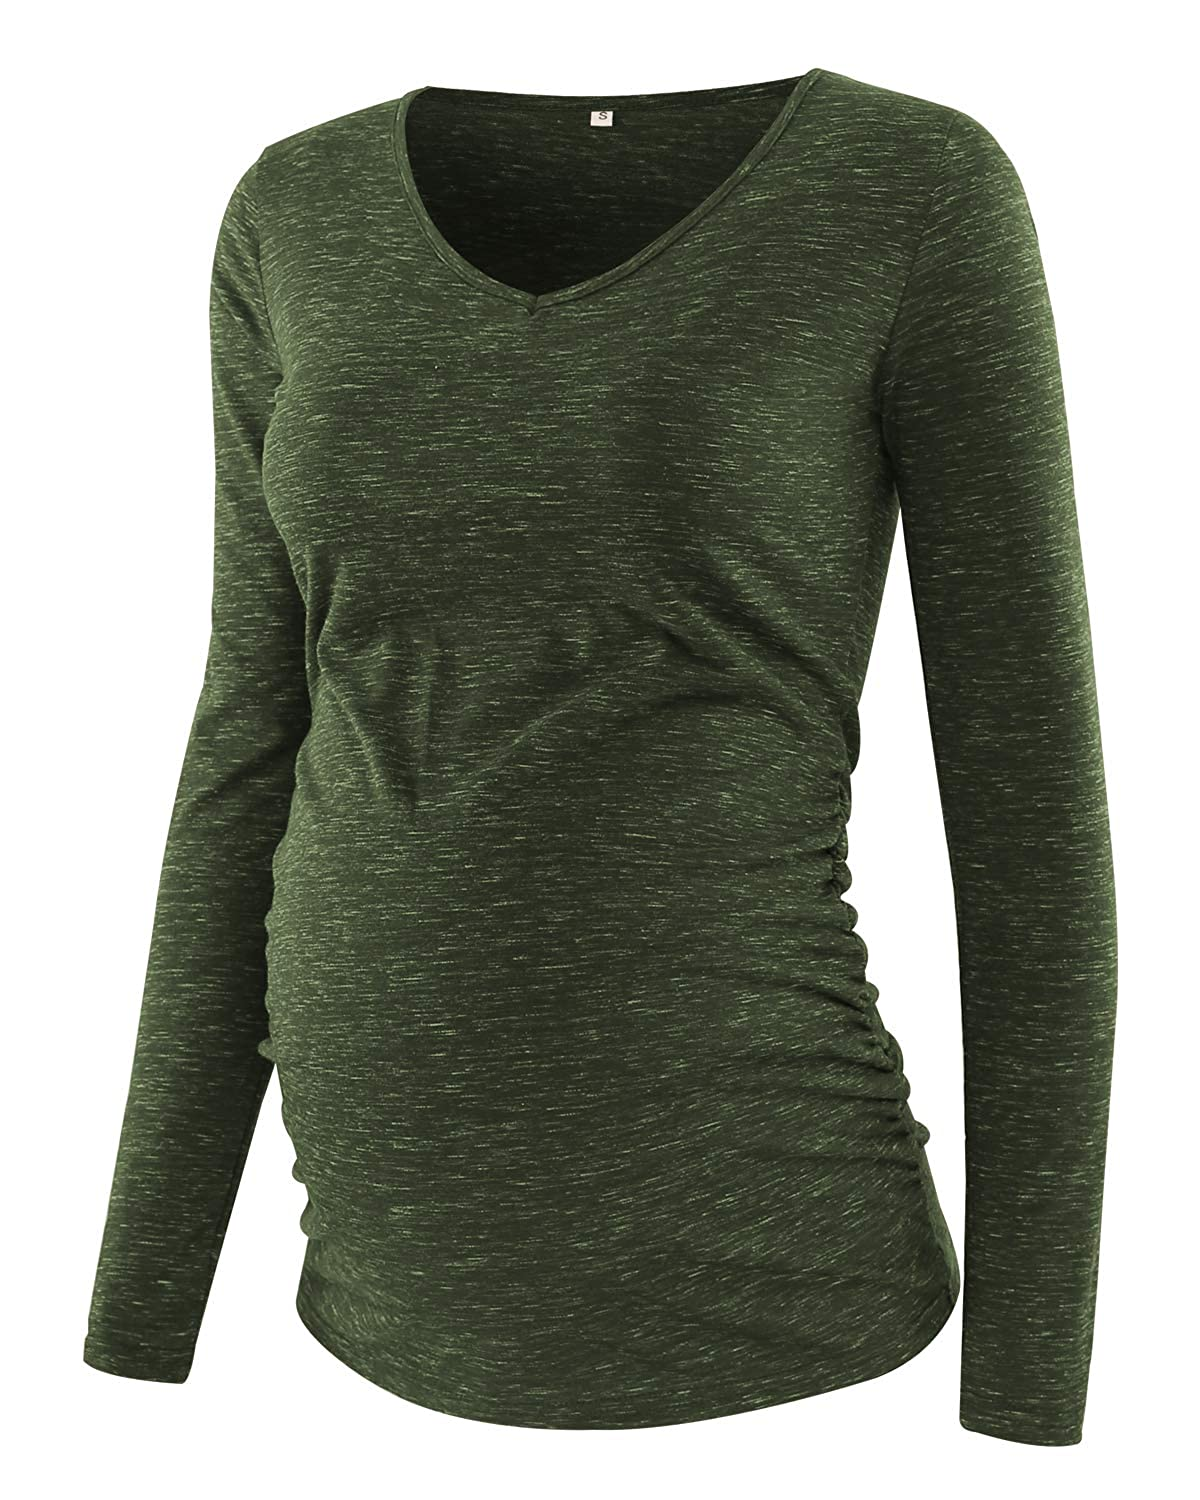 Glampunch Womens Maternity Shirts V Neck Long Sleeve Side Ruched Pregnancy Tops